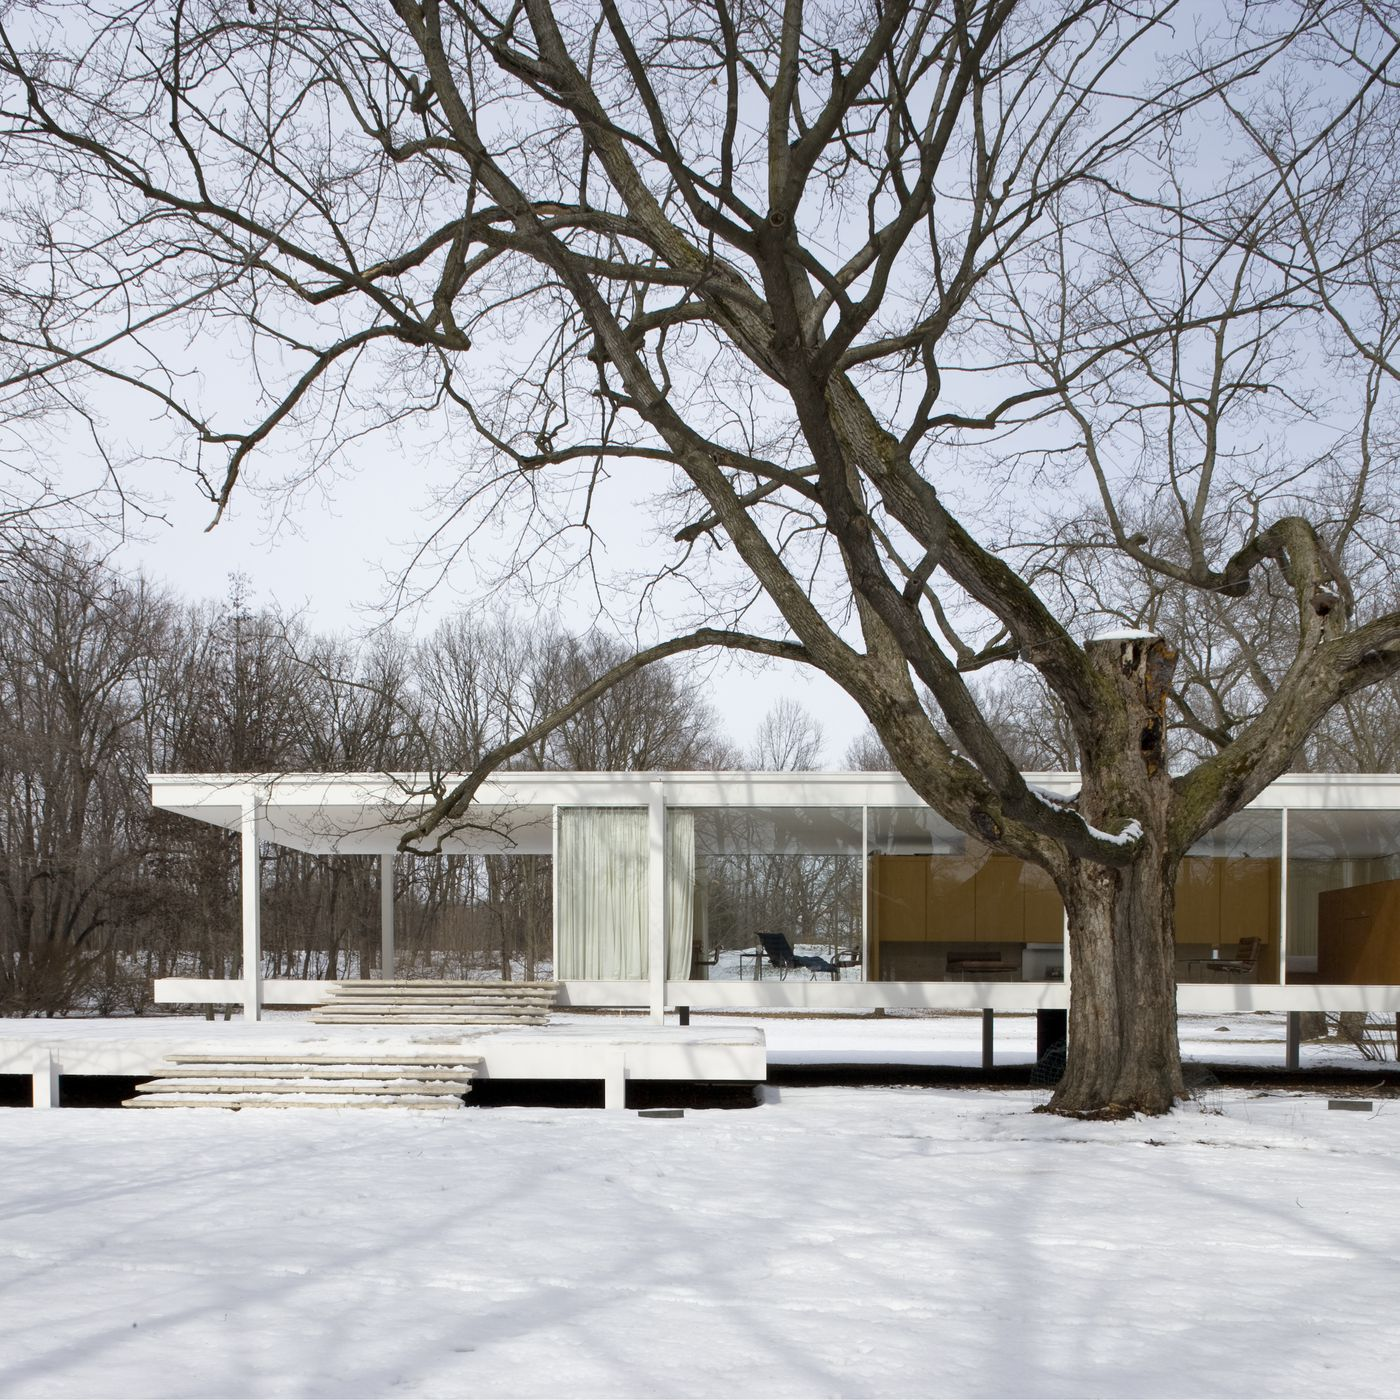 Chicago Mies Van Der Rohe Tour tour mies van der rohe's farnsworth house in all its winter